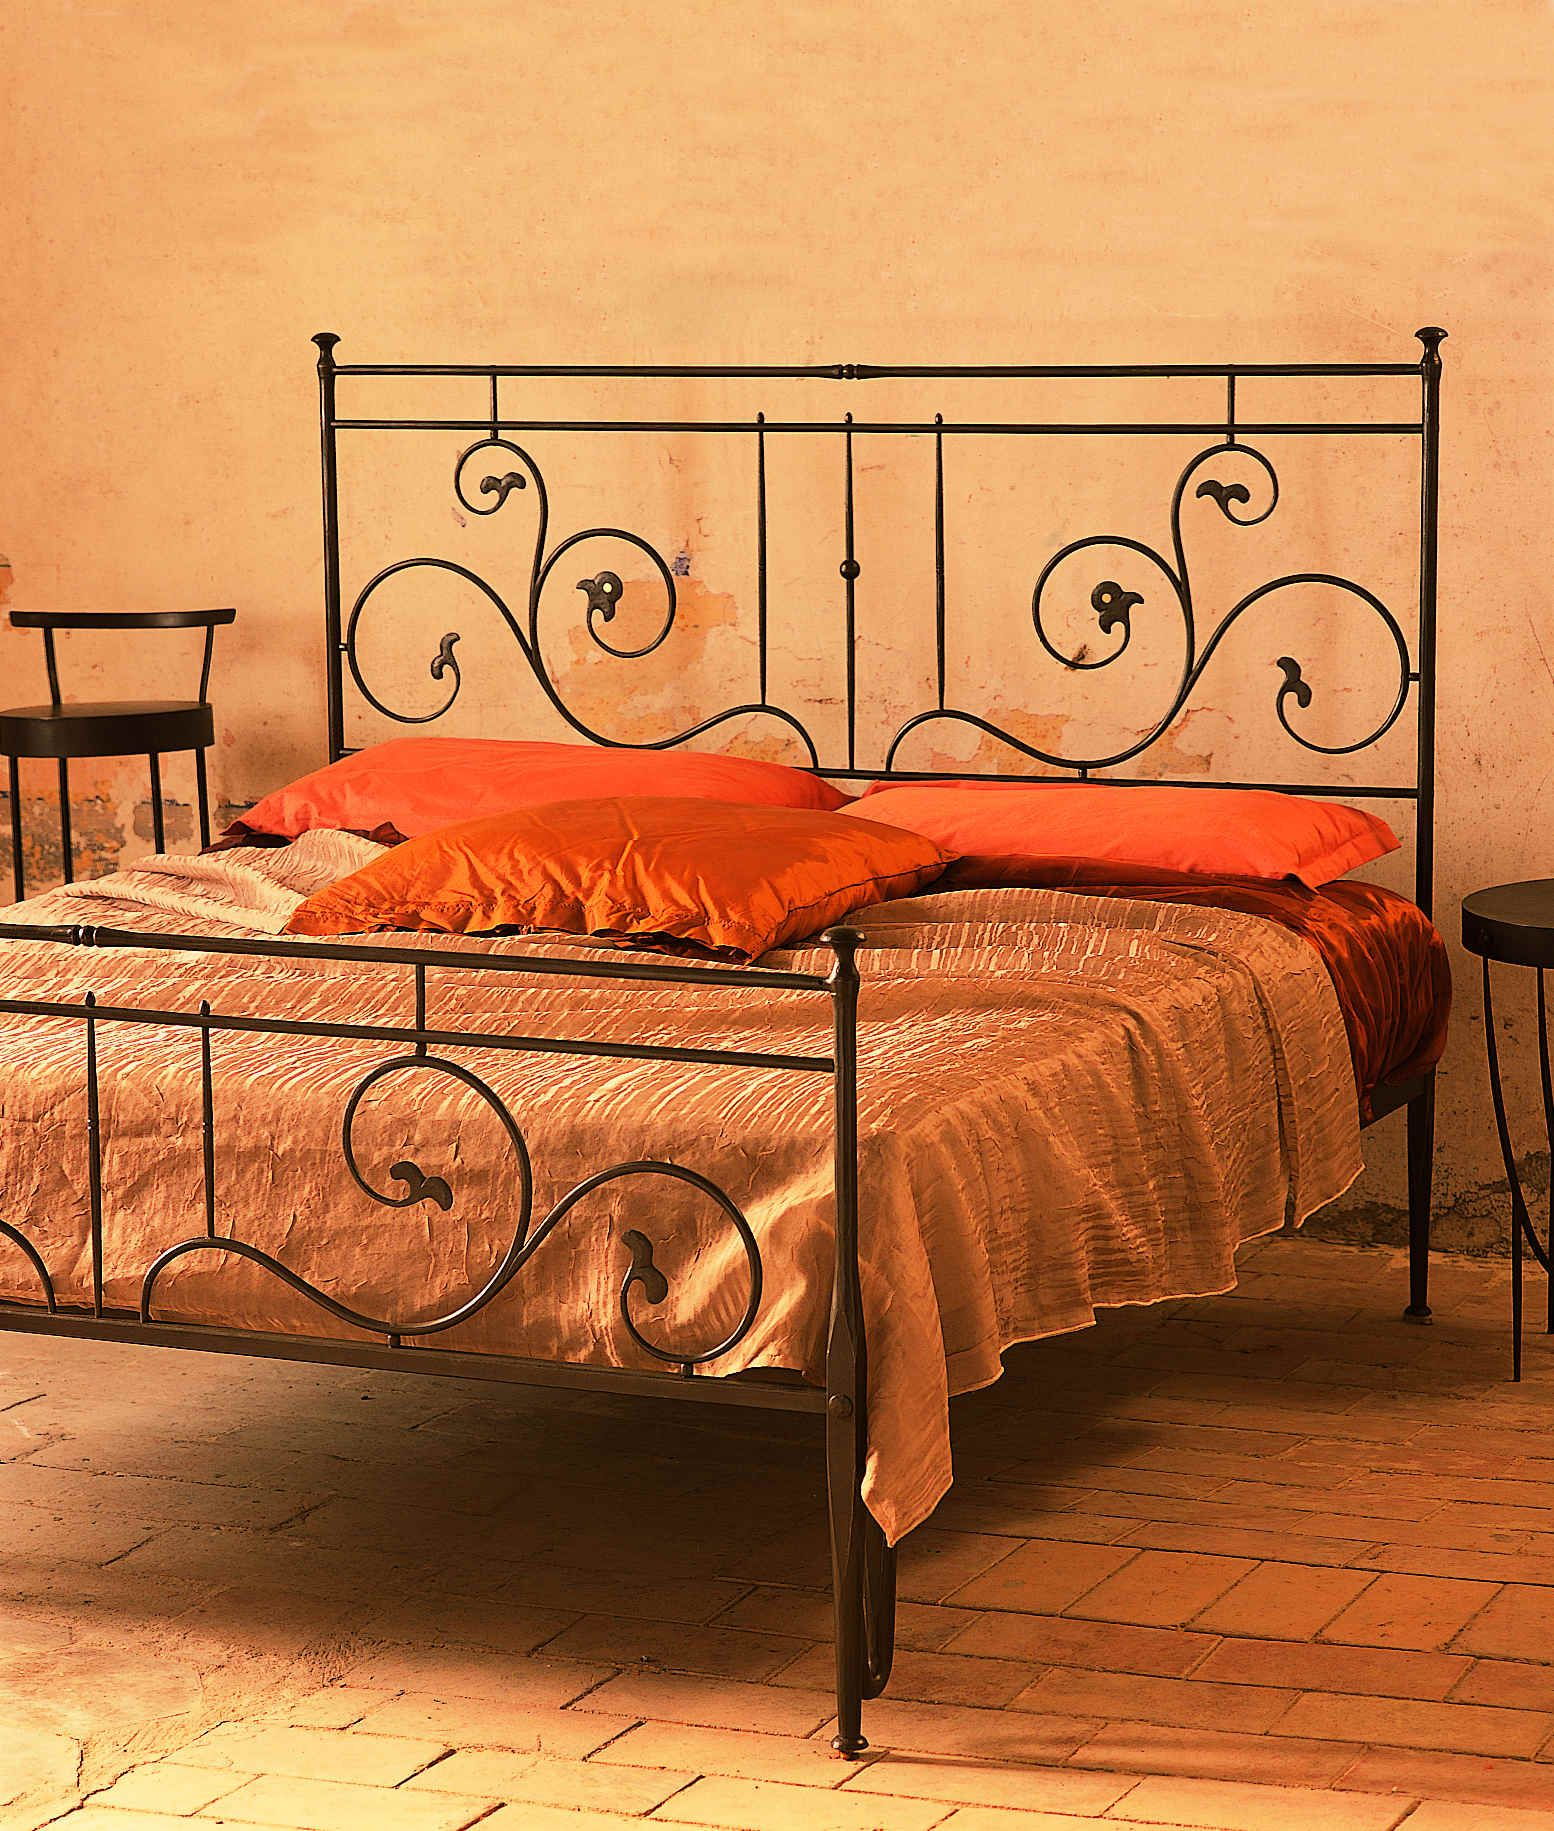 This Soffio Capi Wrought Iron Bed Is Both Whimsical And Sophisticated It Would Be Perfect In Any Bedroom Get Yours Now At Tuscanhills